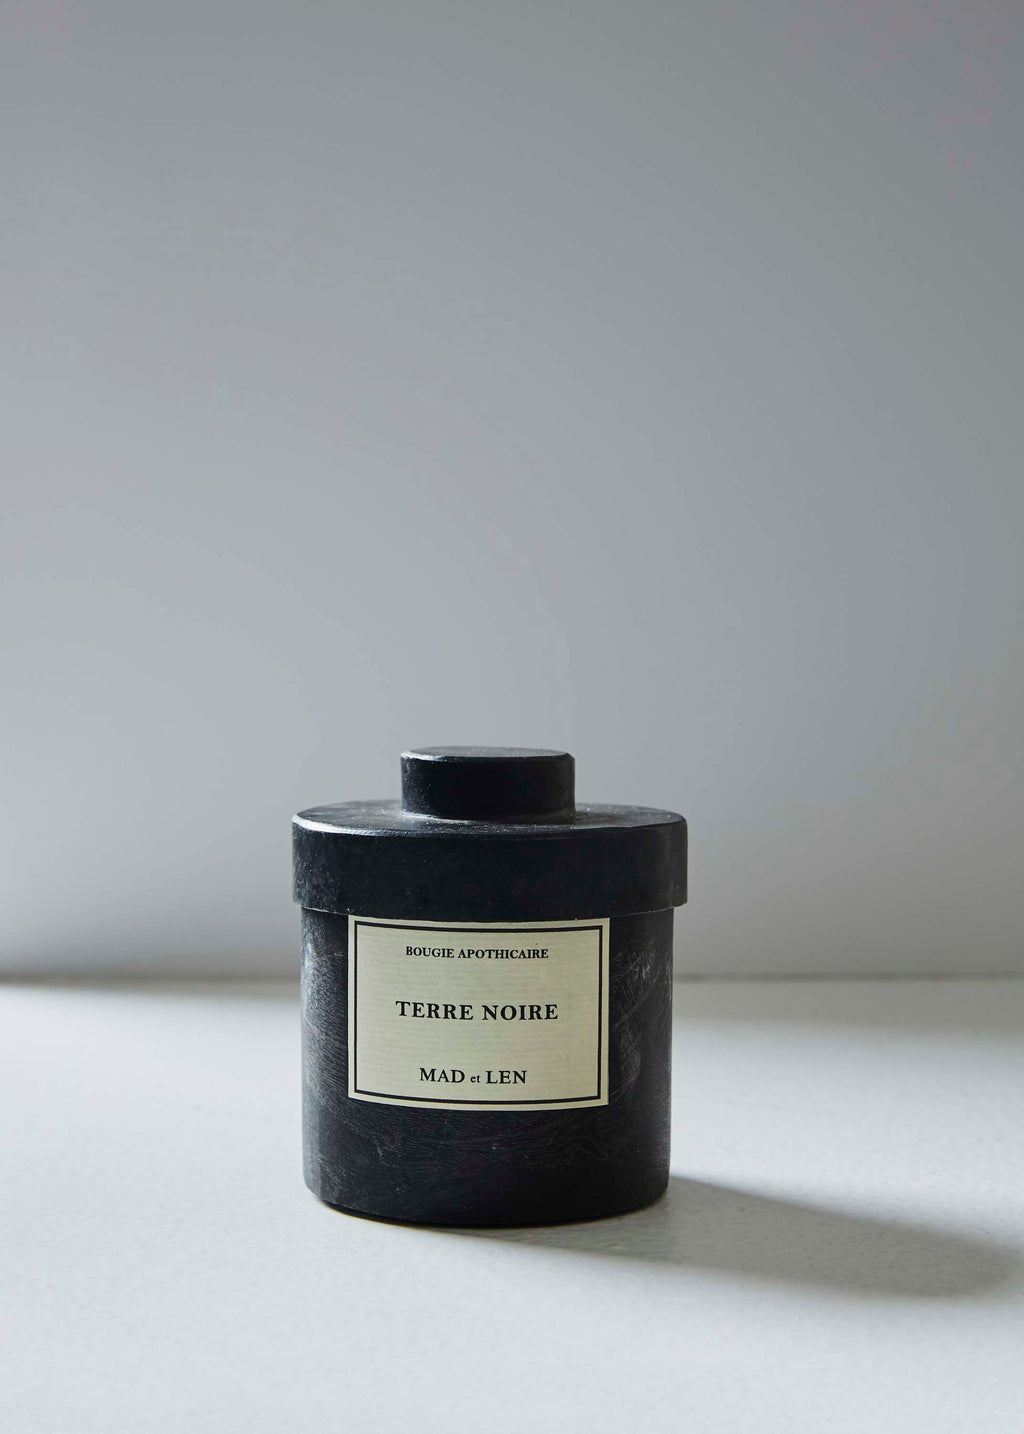 Bougie Apothecare Terre Noire Candle